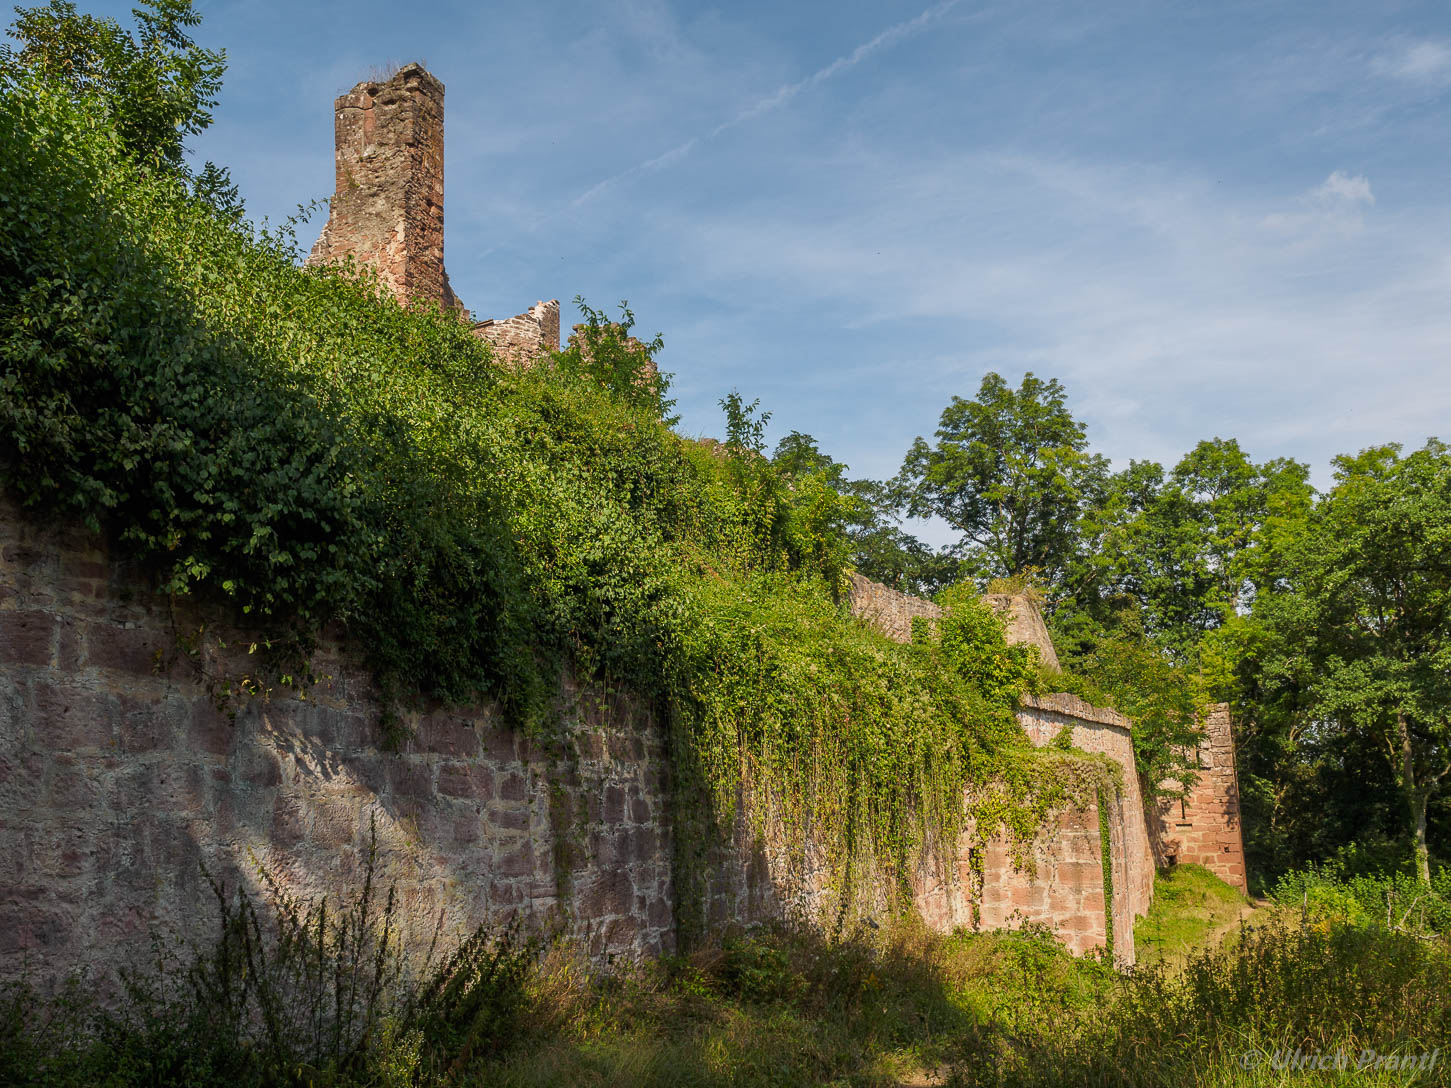 Collenburg / Kollenburg